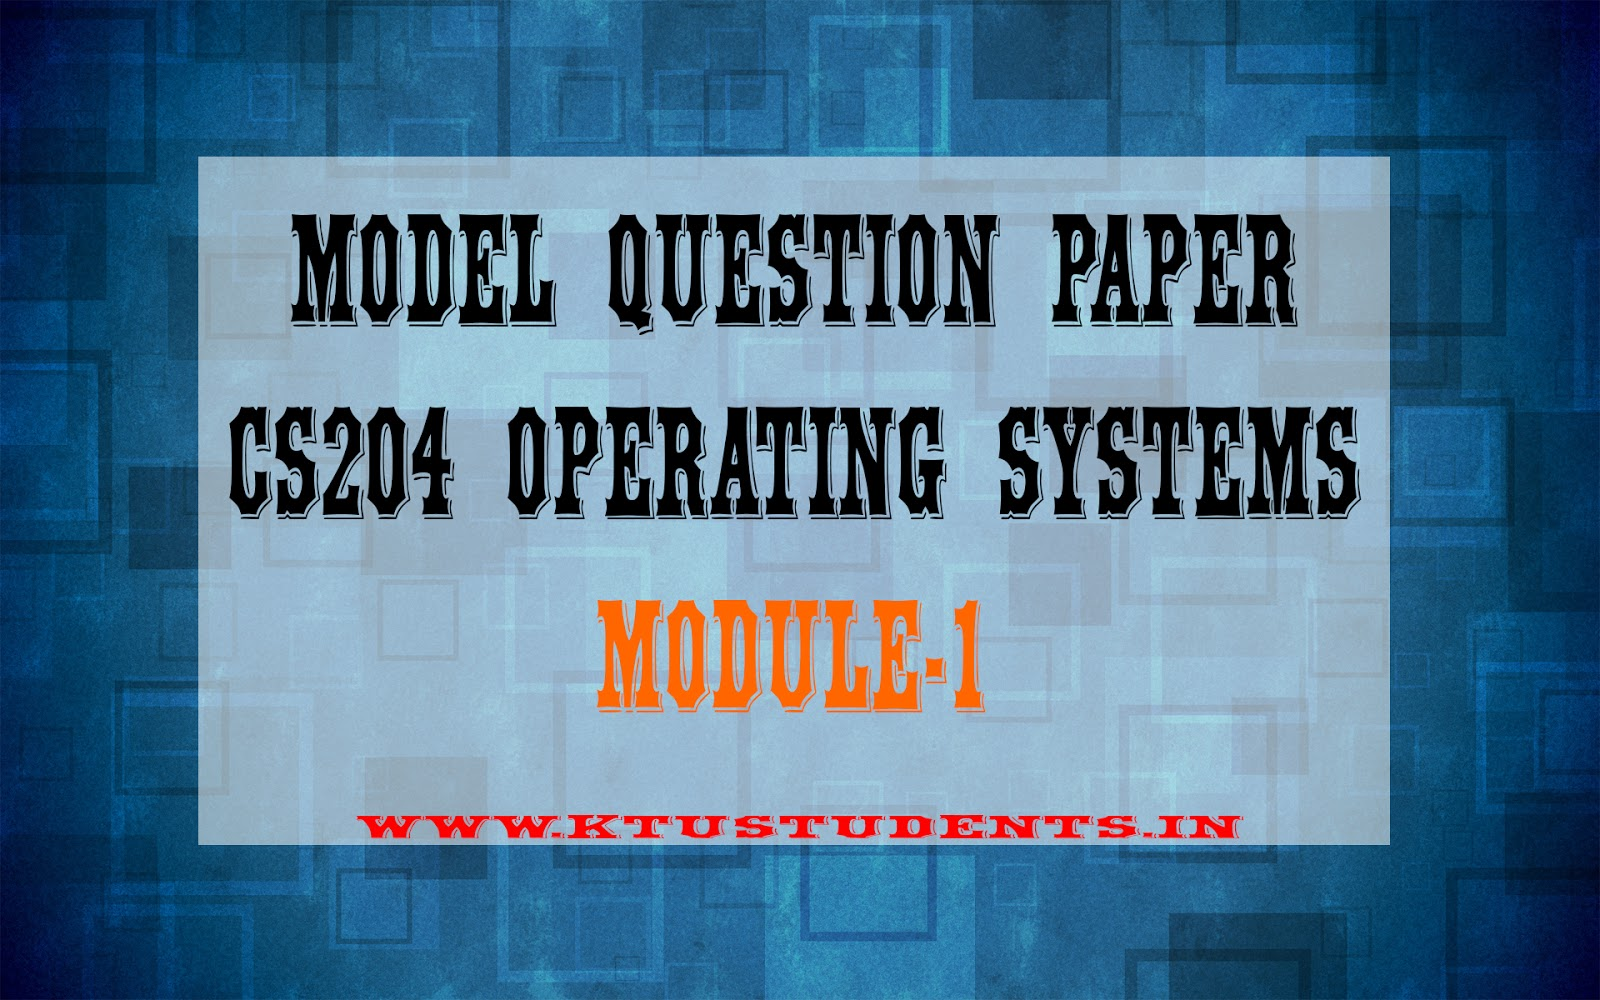 operating system question paper Cp7204,cp7204 advanced operating systems,cp7204 advanced operating systems nov/dec 2016 anna university question paper,ii sem cse question paper.